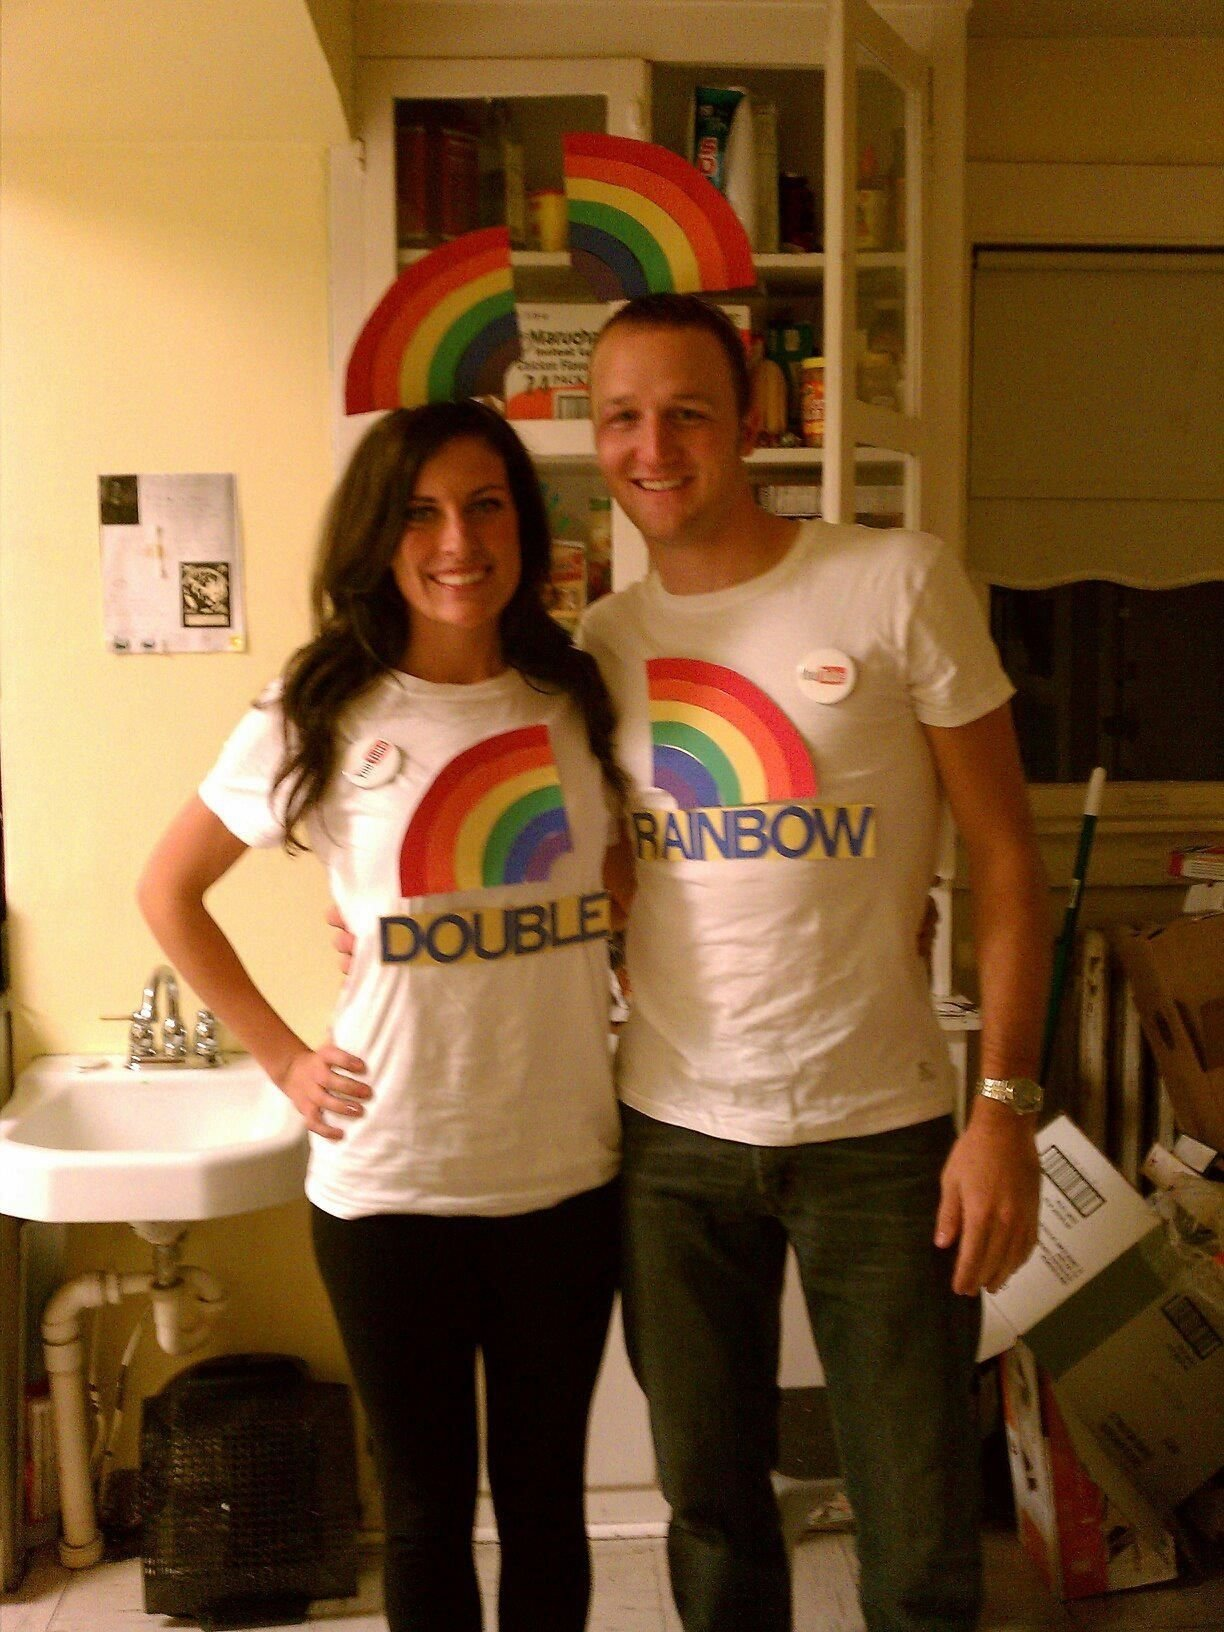 couples halloween costume -double rainbow (see youtube video). omg i